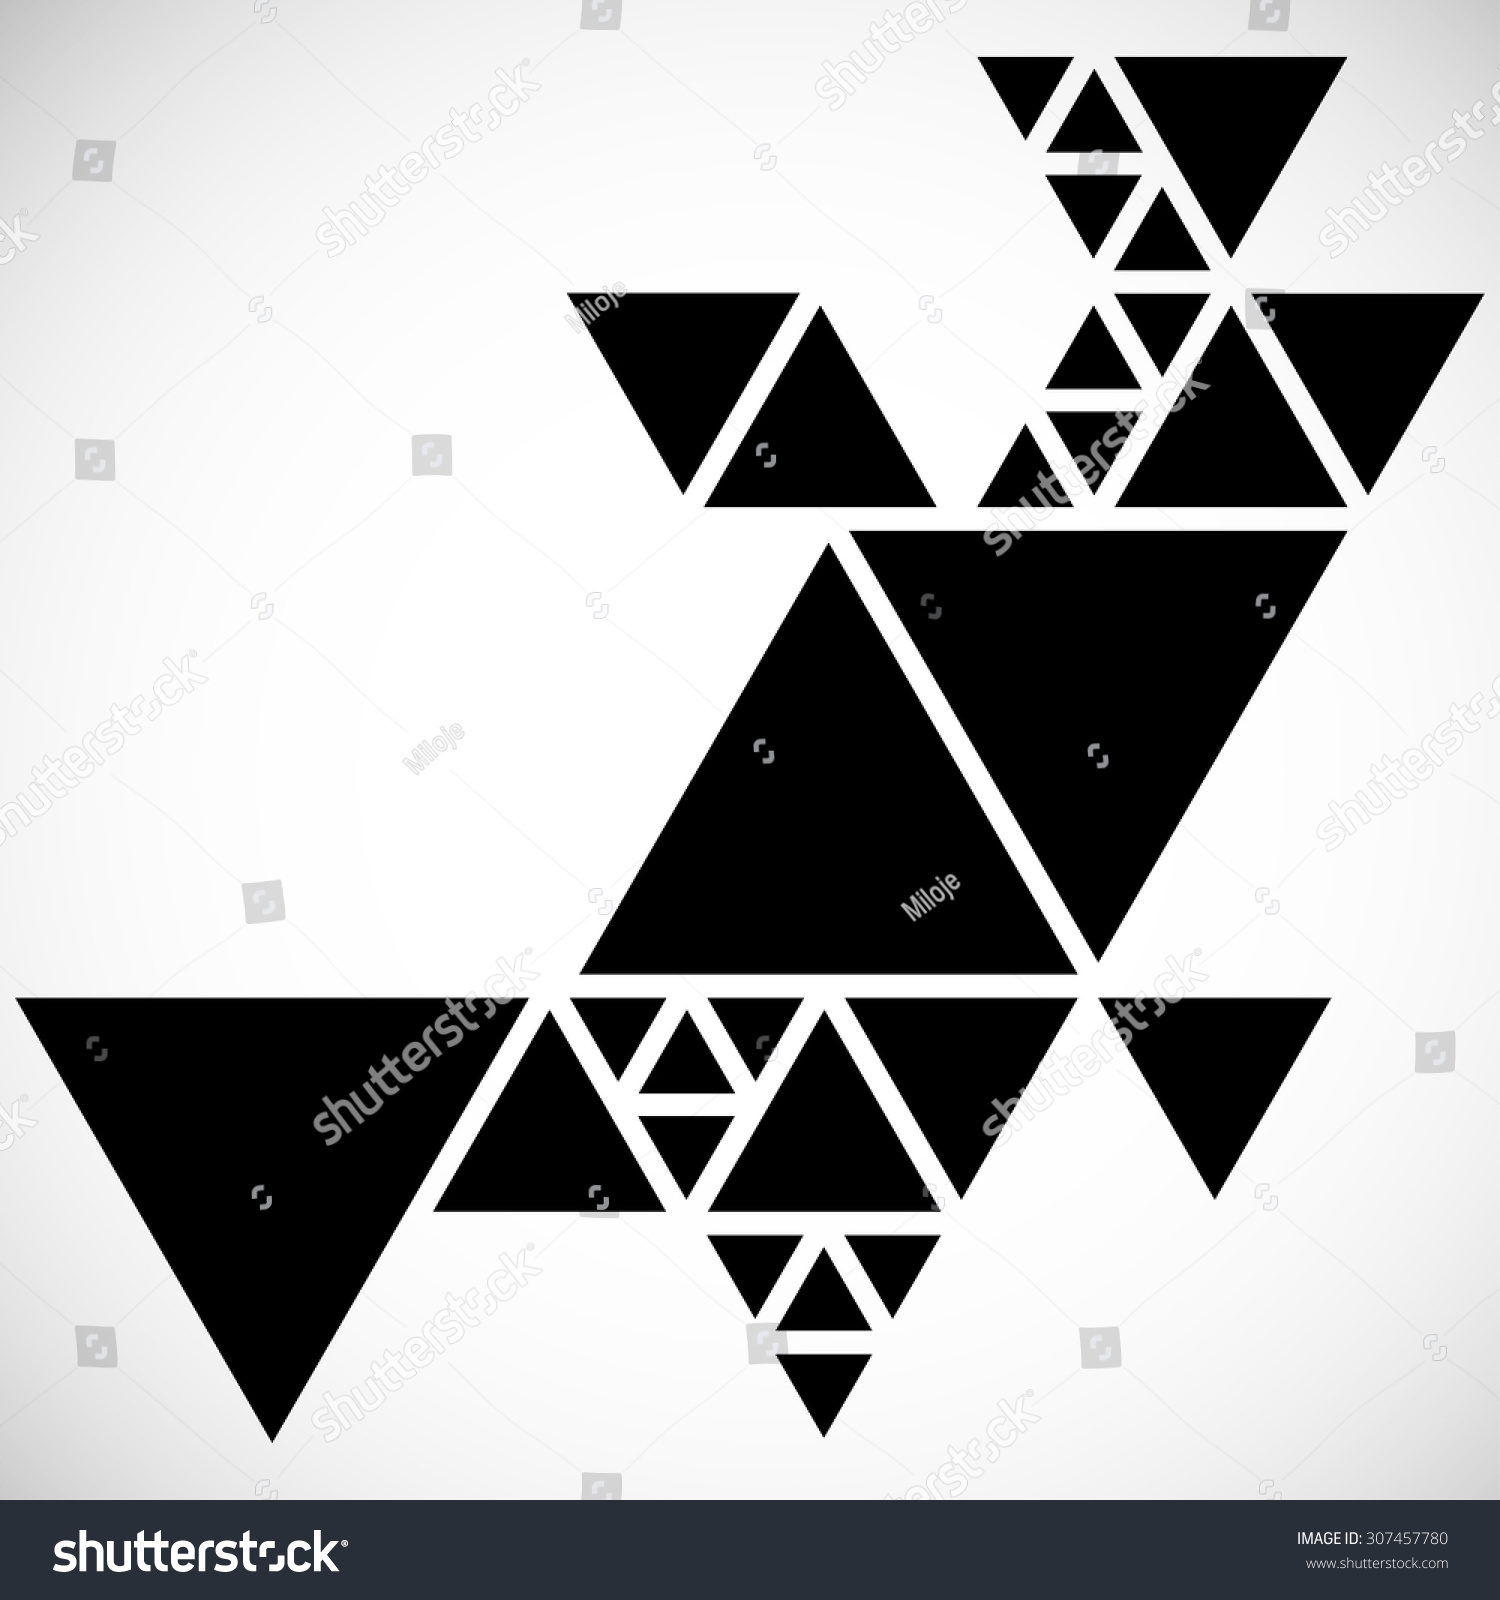 royalty free modern geometrical triangle design 307457780 stock